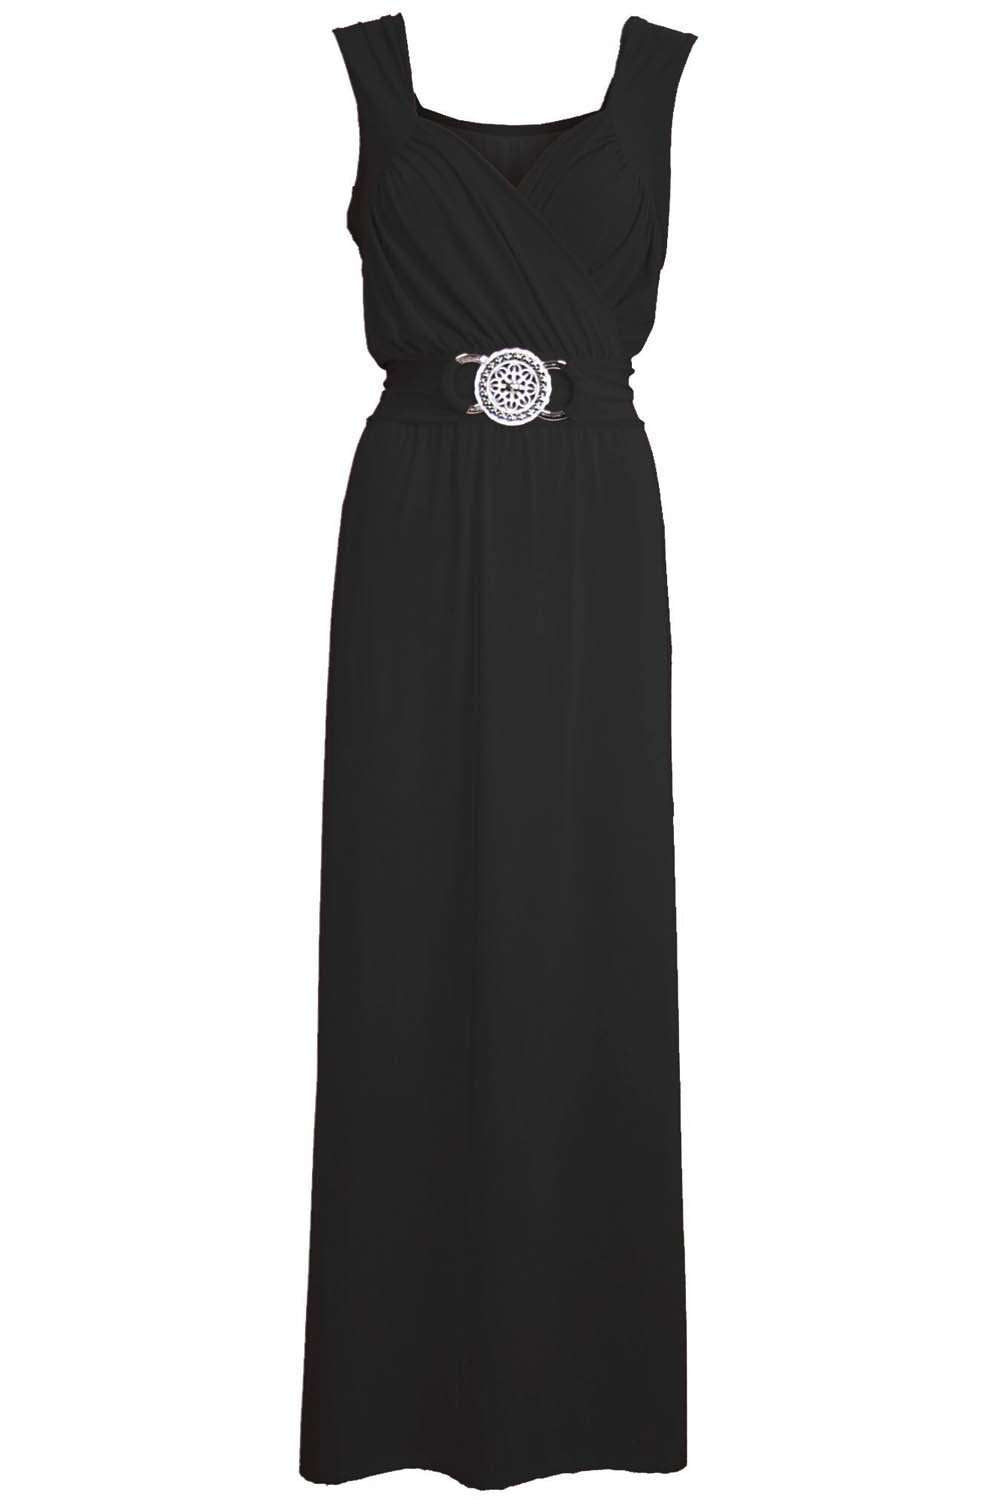 Black Wrap Front Beaded Belt Floaty Maxi Dress - bejealous-com